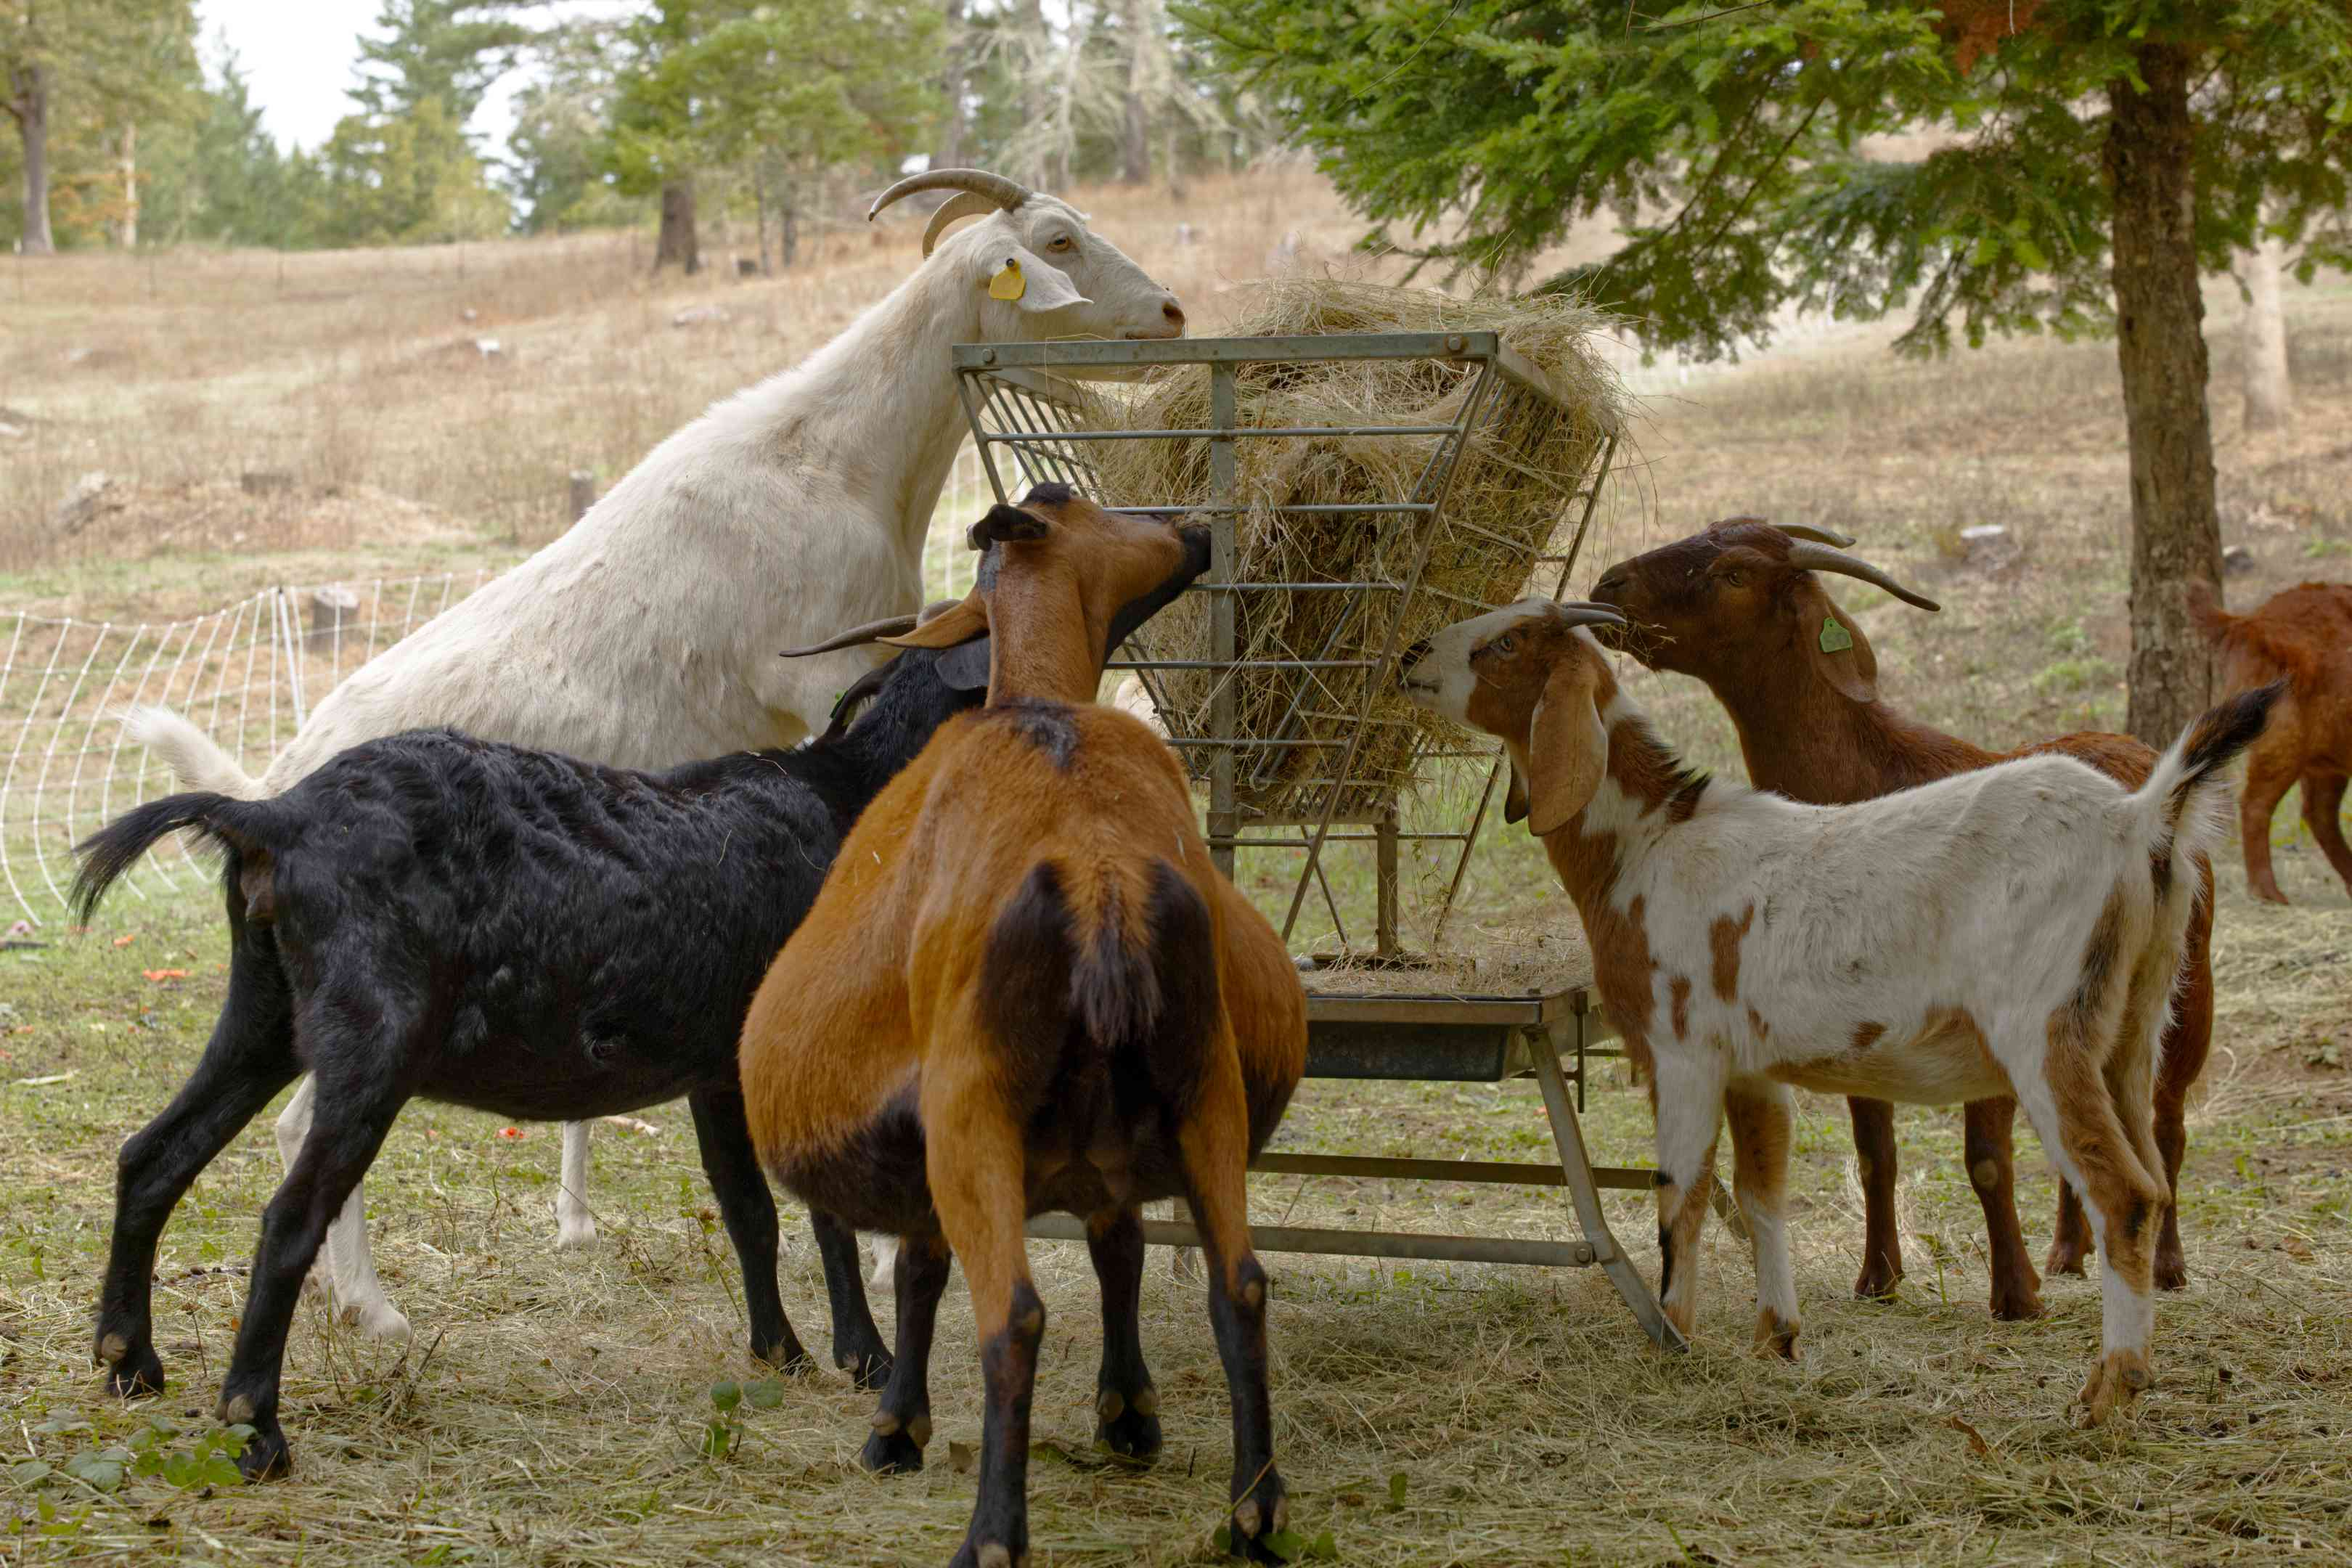 goats stand up on hind legs to eat hay out of metal raised container in pasture